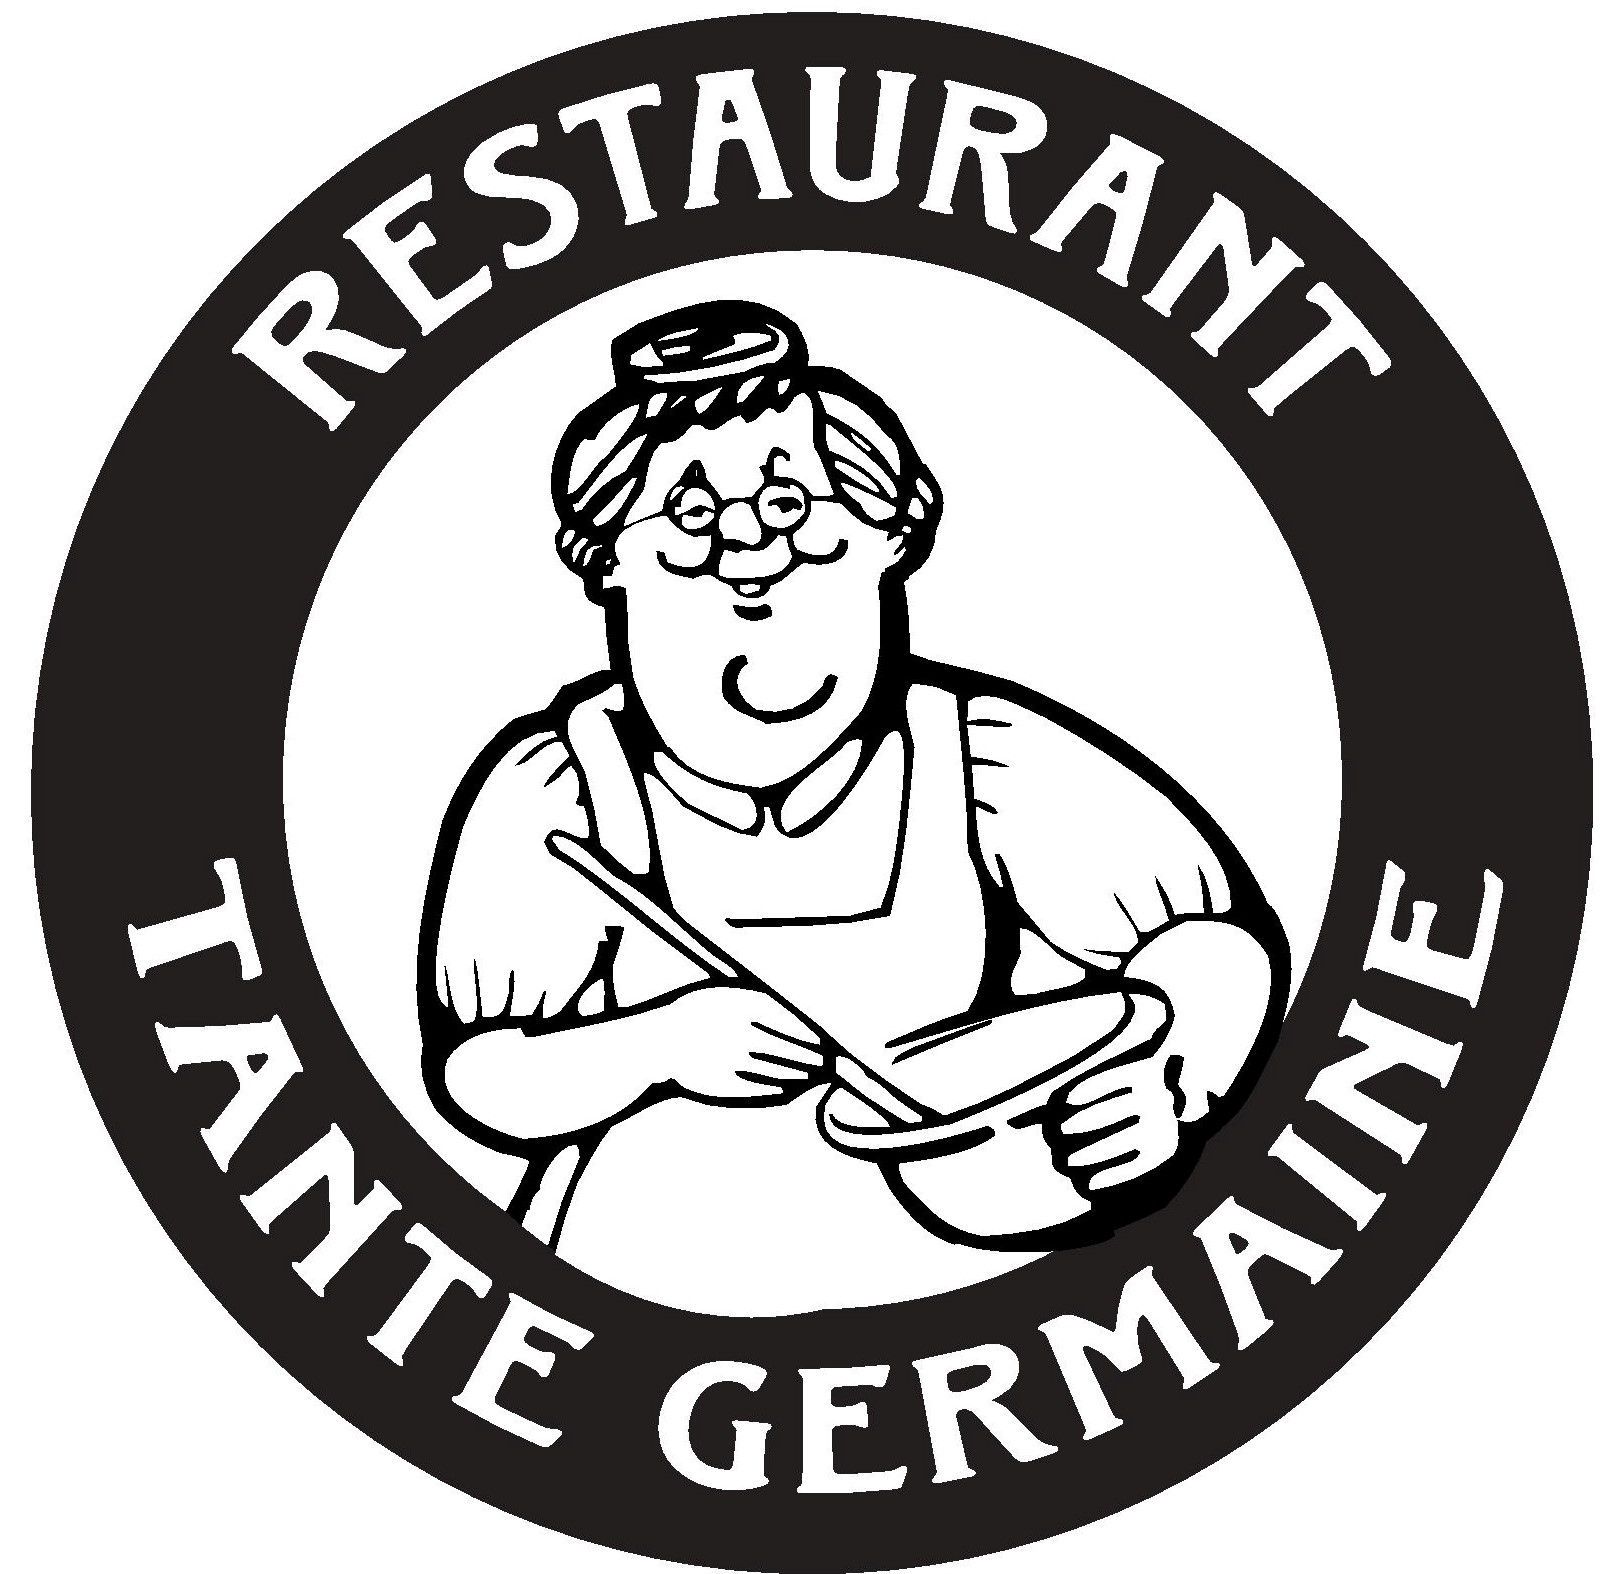 Tante Germaine